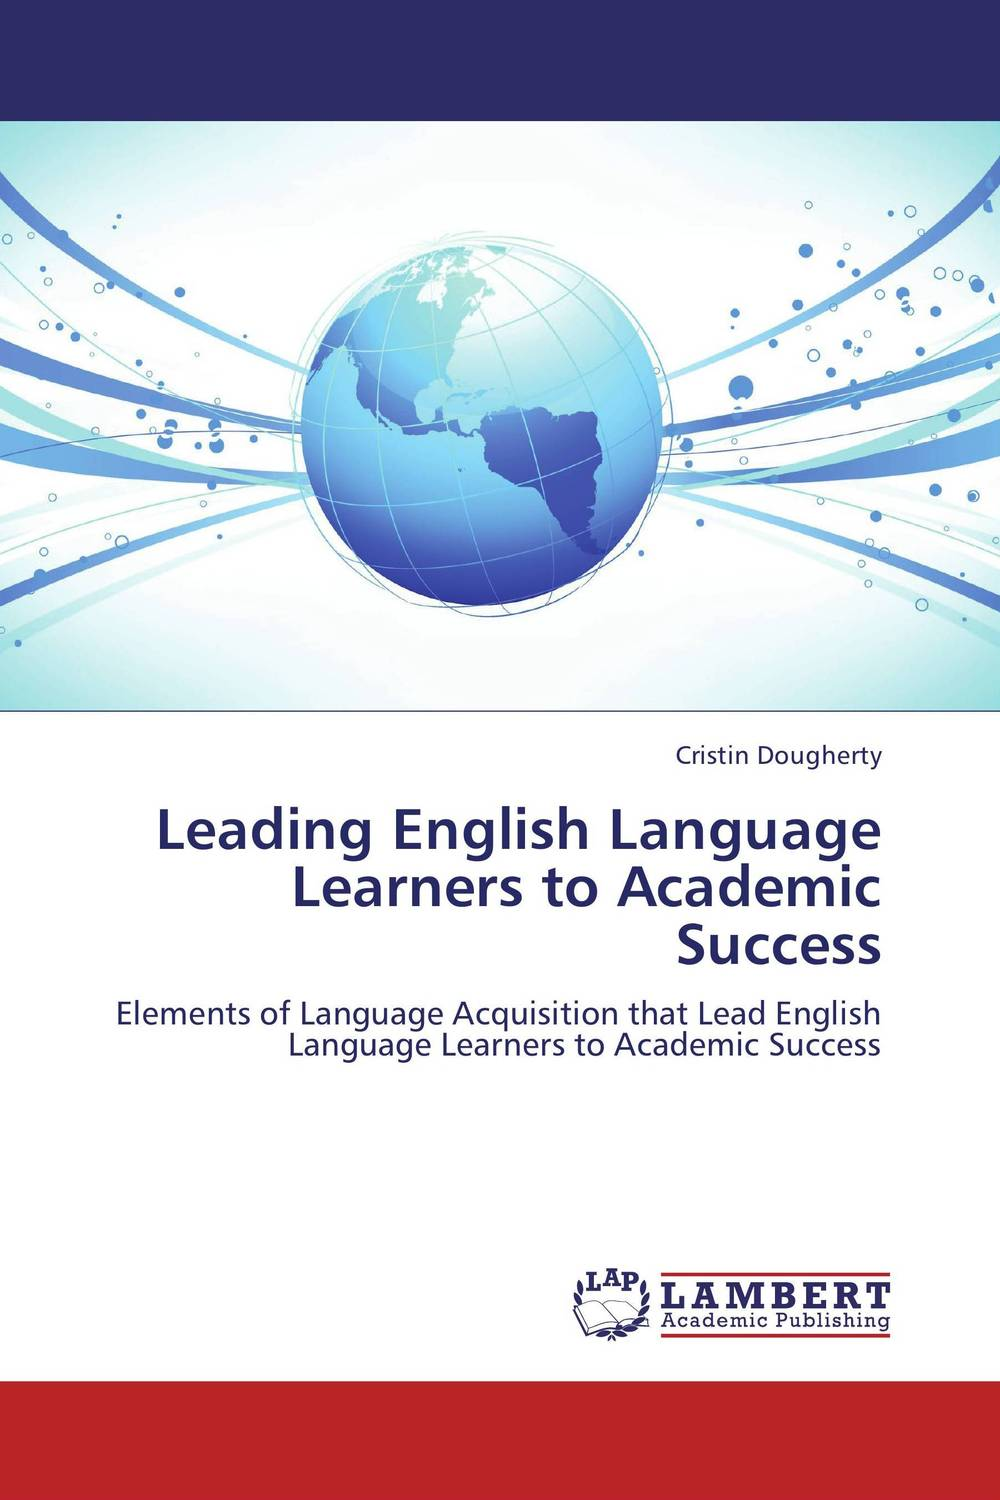 Leading English Language Learners to Academic Success david parmenter the leading edge manager s guide to success strategies and better practices